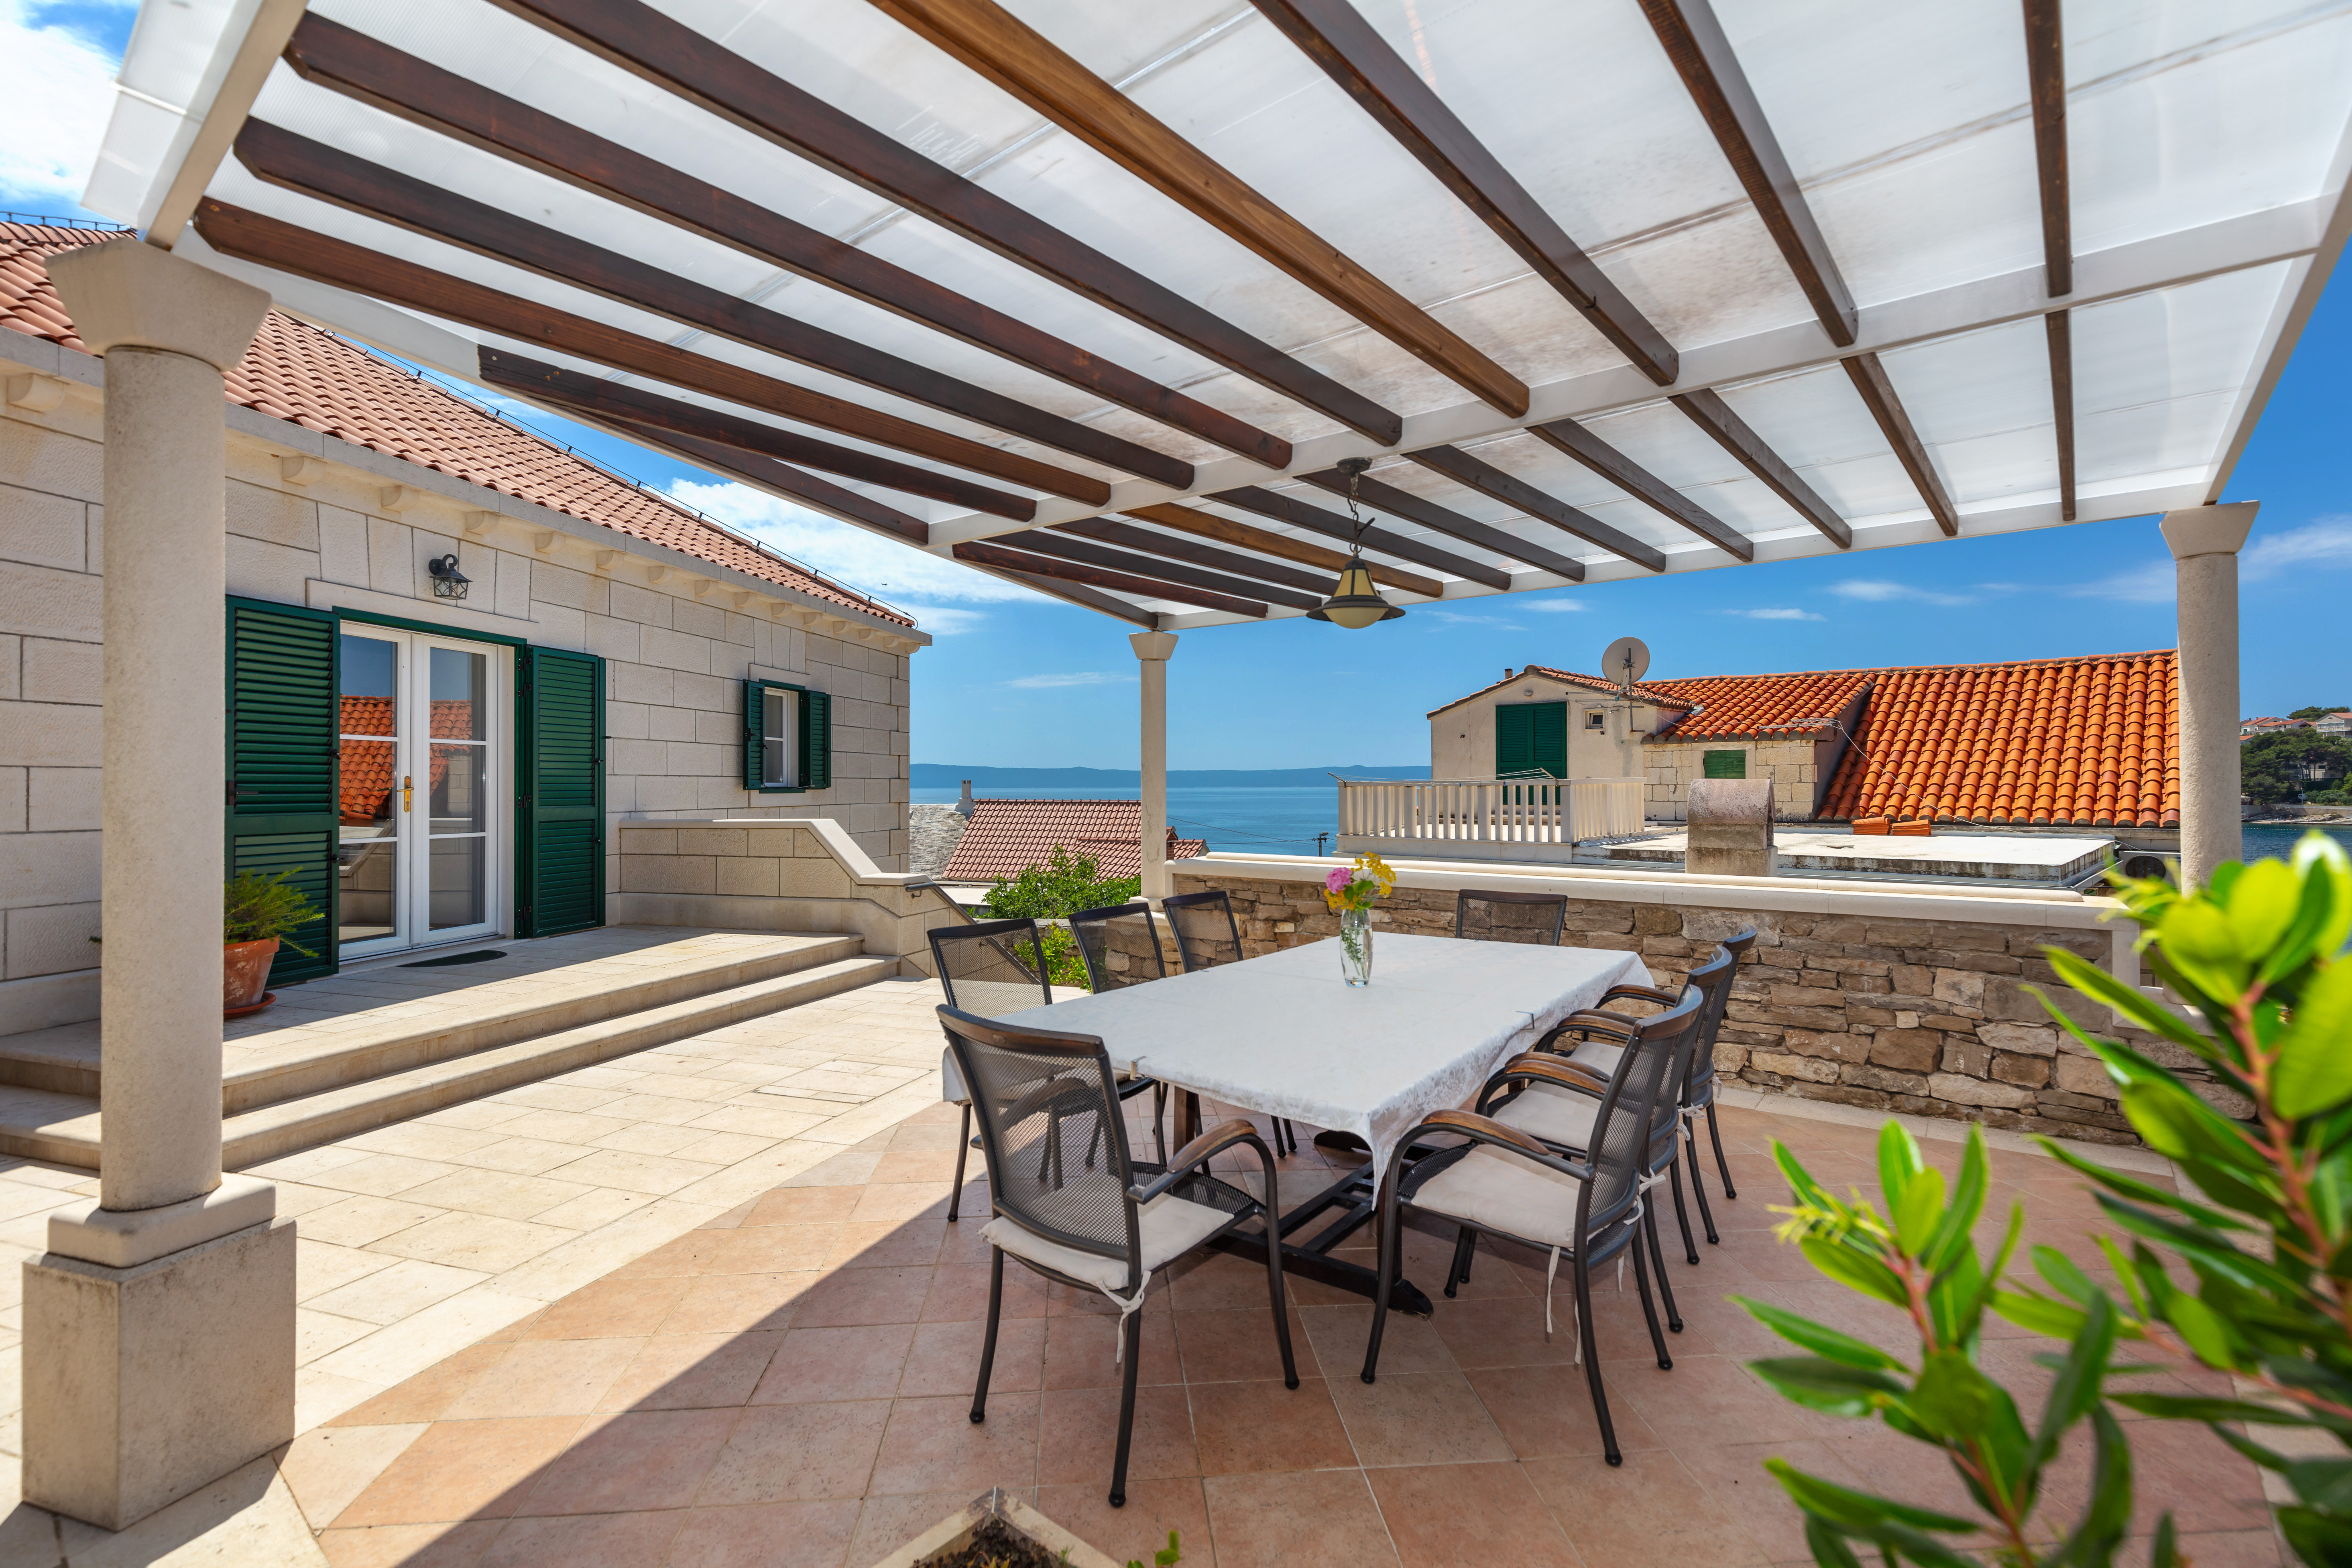 Shaded outdoor dining area with the sea view